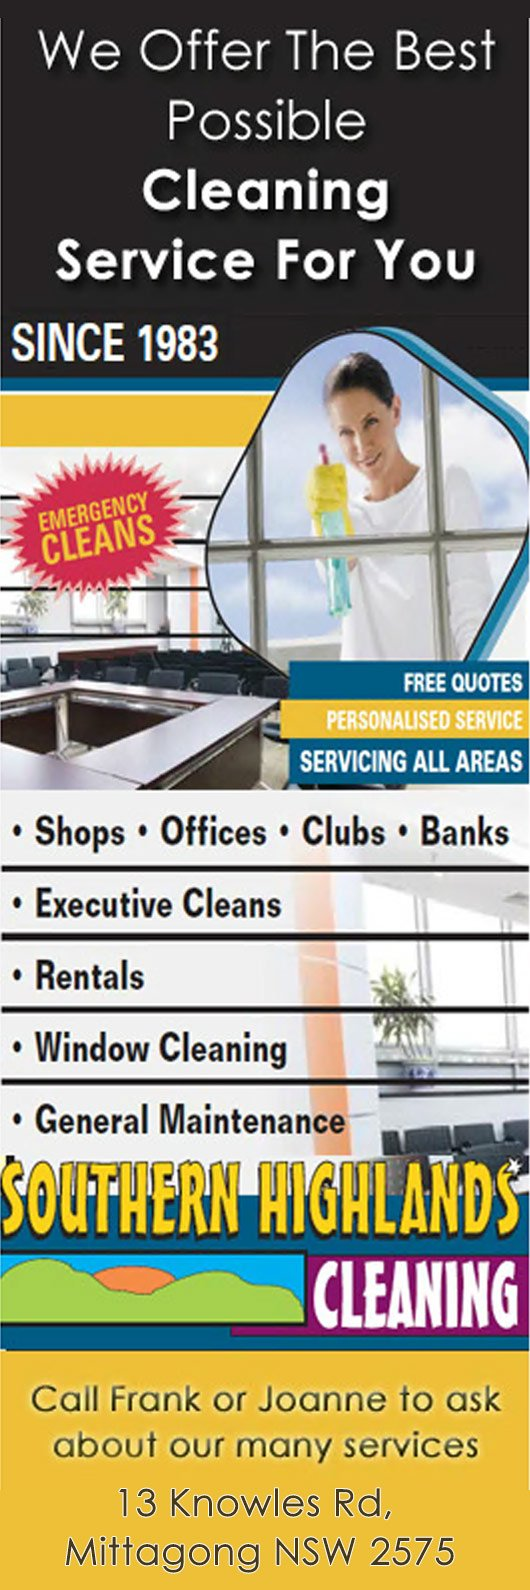 Cleaning Quotes Southern Highlands Cleaning  Commercial & Industrial Cleaning